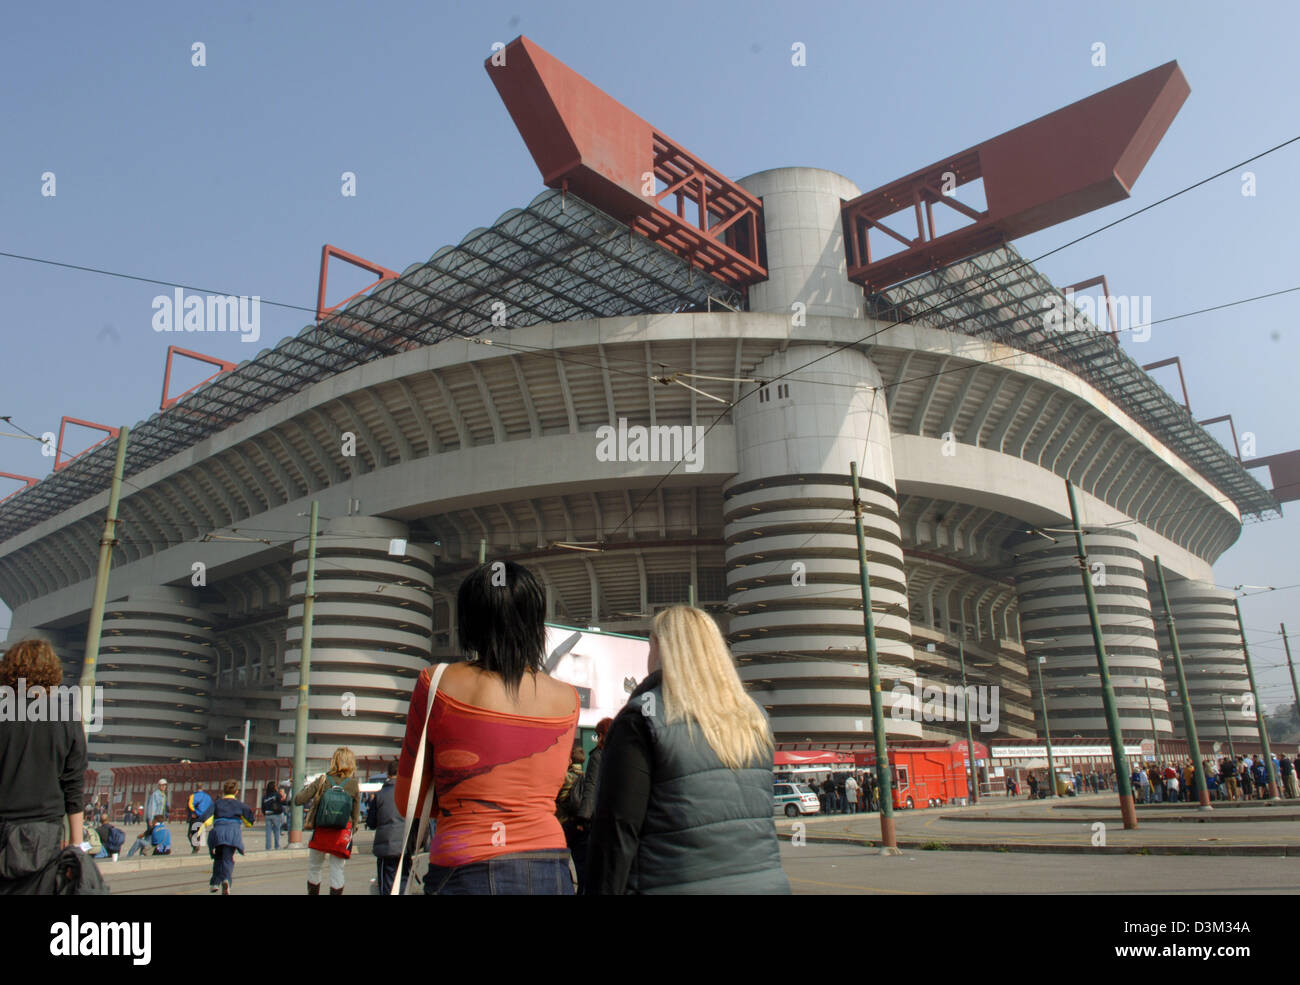 (dpa) - The picture shows the Giuseppe Meazza stadium in Milan San Siro, Italy, 16 October 2005. The second largest - Stock Image